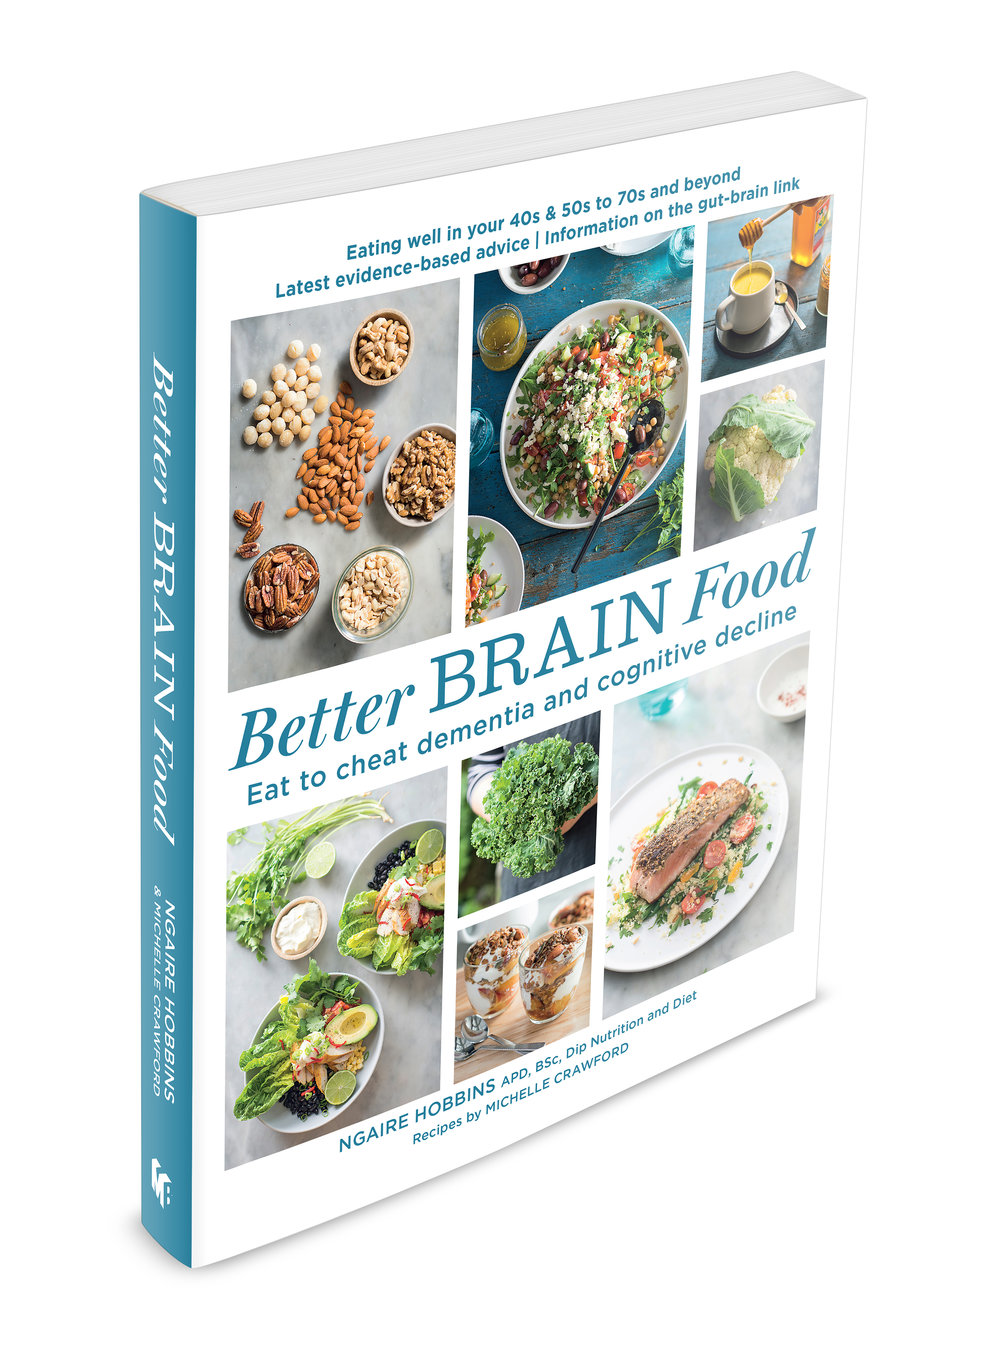 Book Series By Mike No 1 Bent St Better Brain Food Ngaire Hobbins